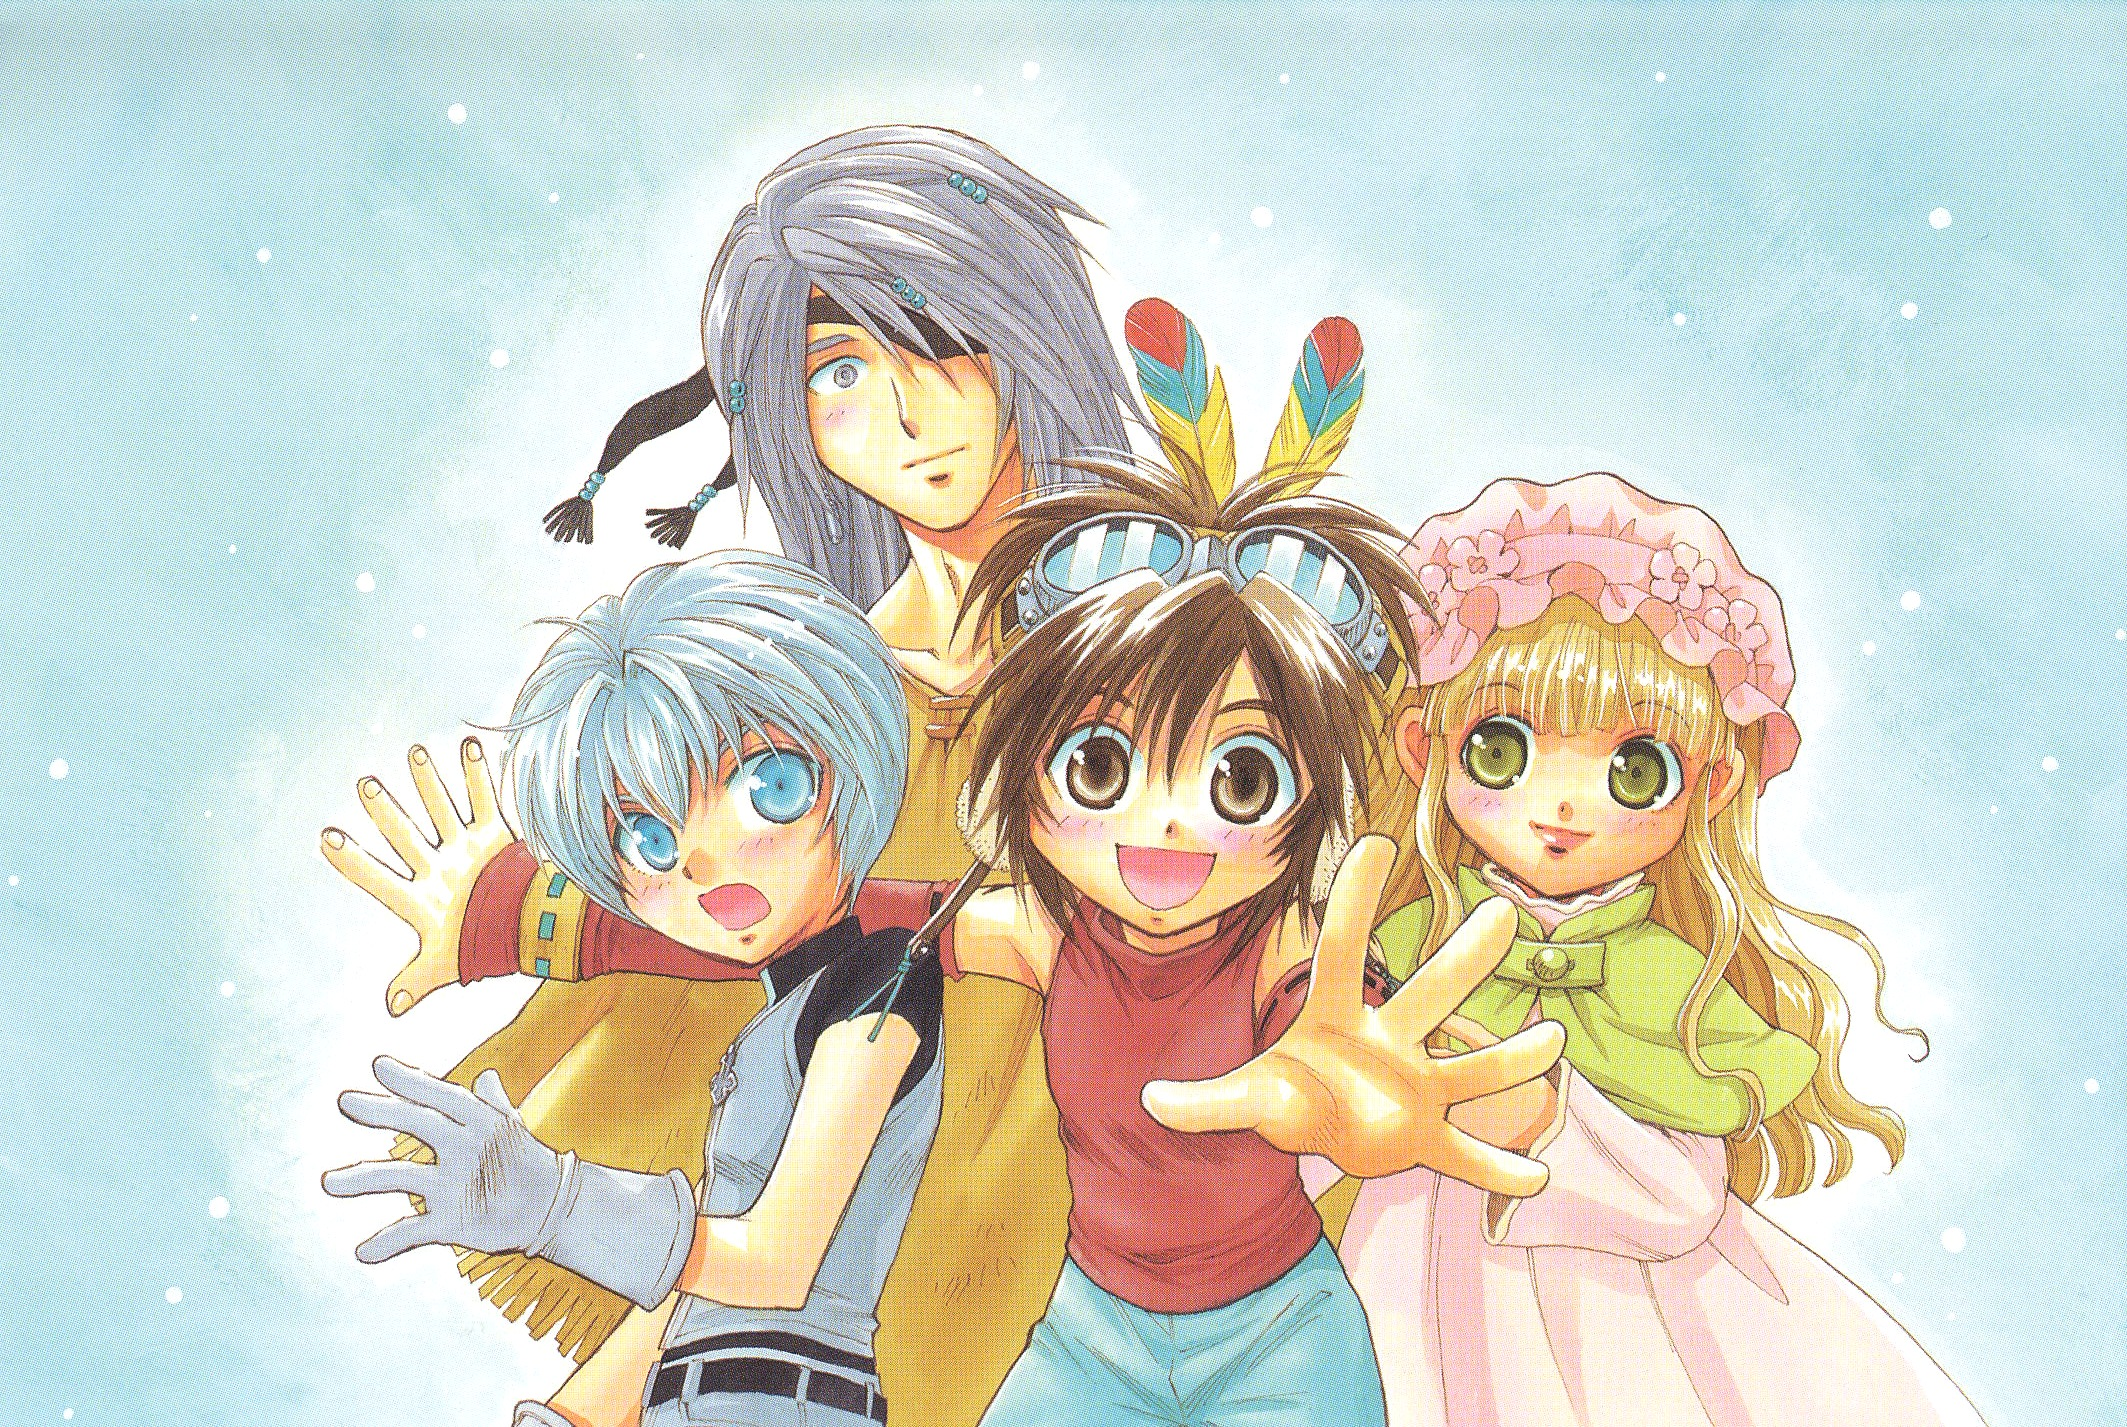 File:Manga-anima1.jpg